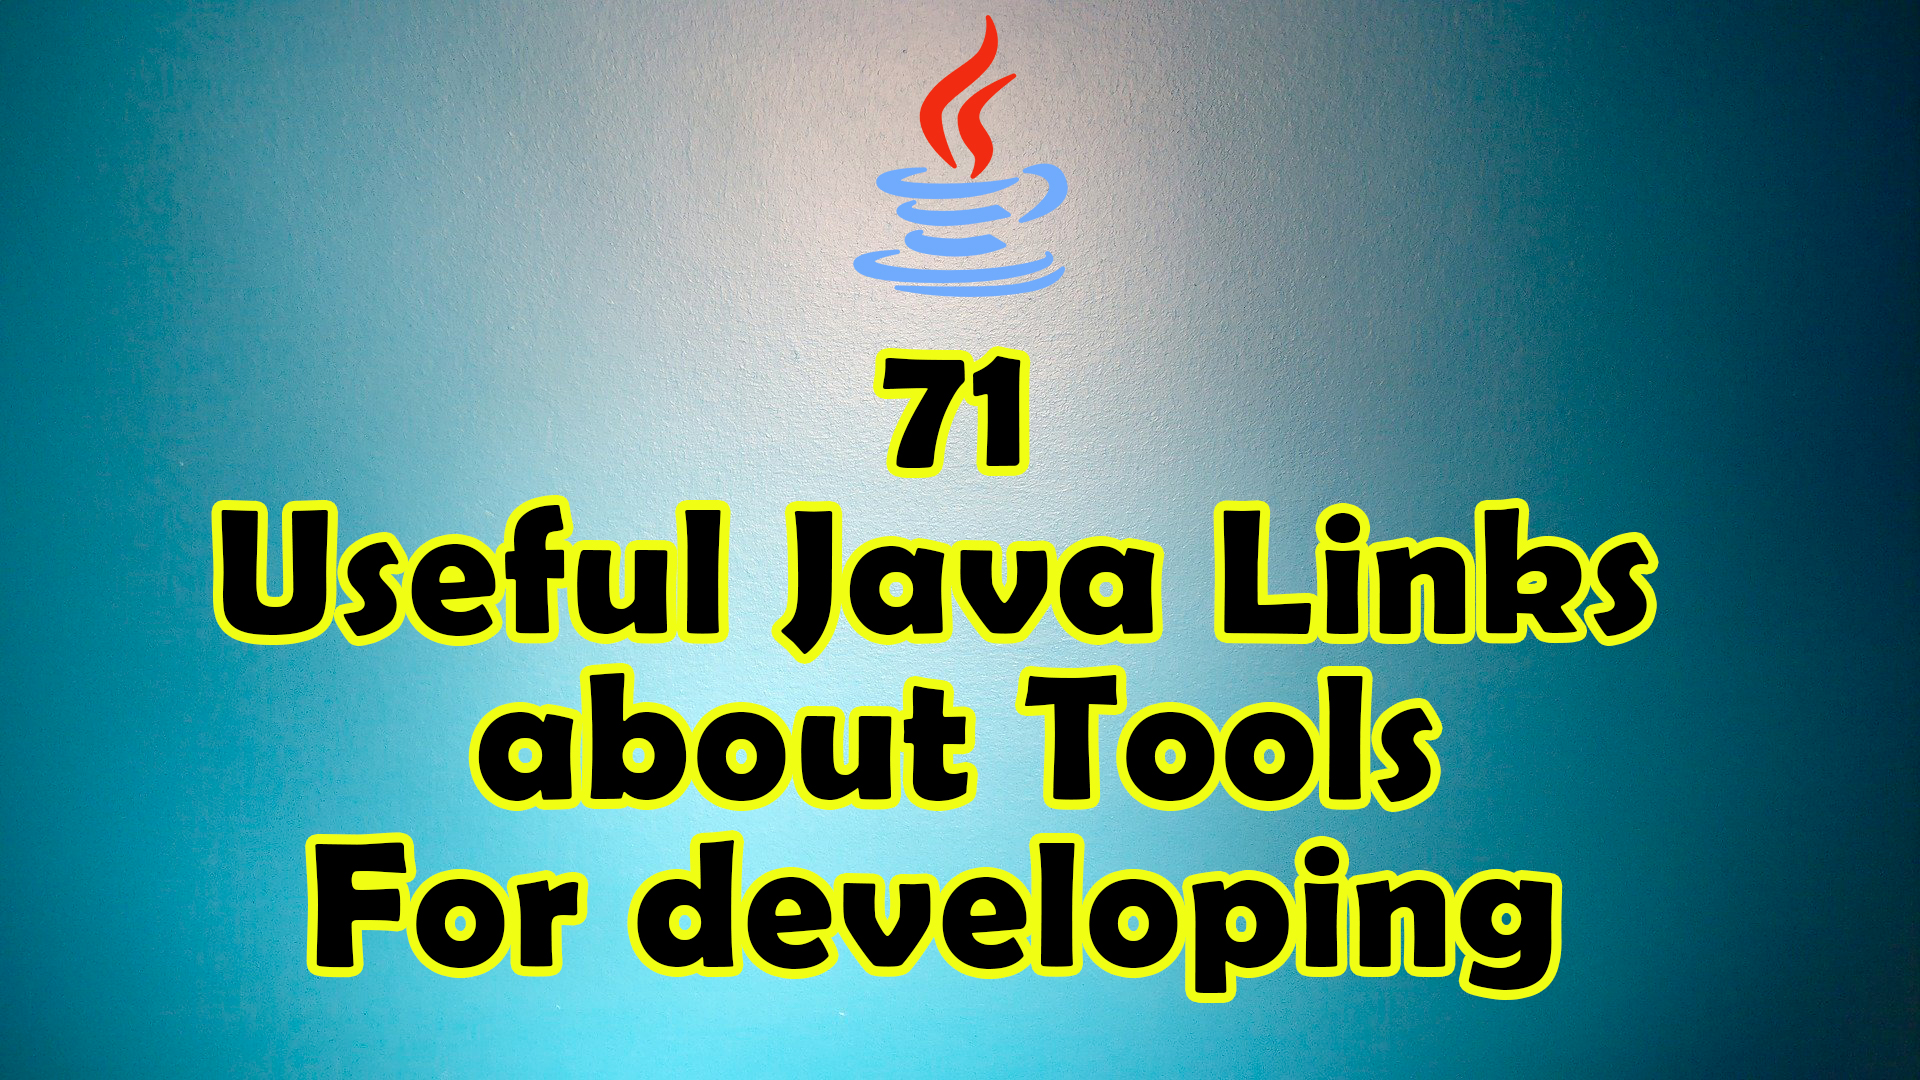 More Than 71 Useful Java Links About Tools for Developing